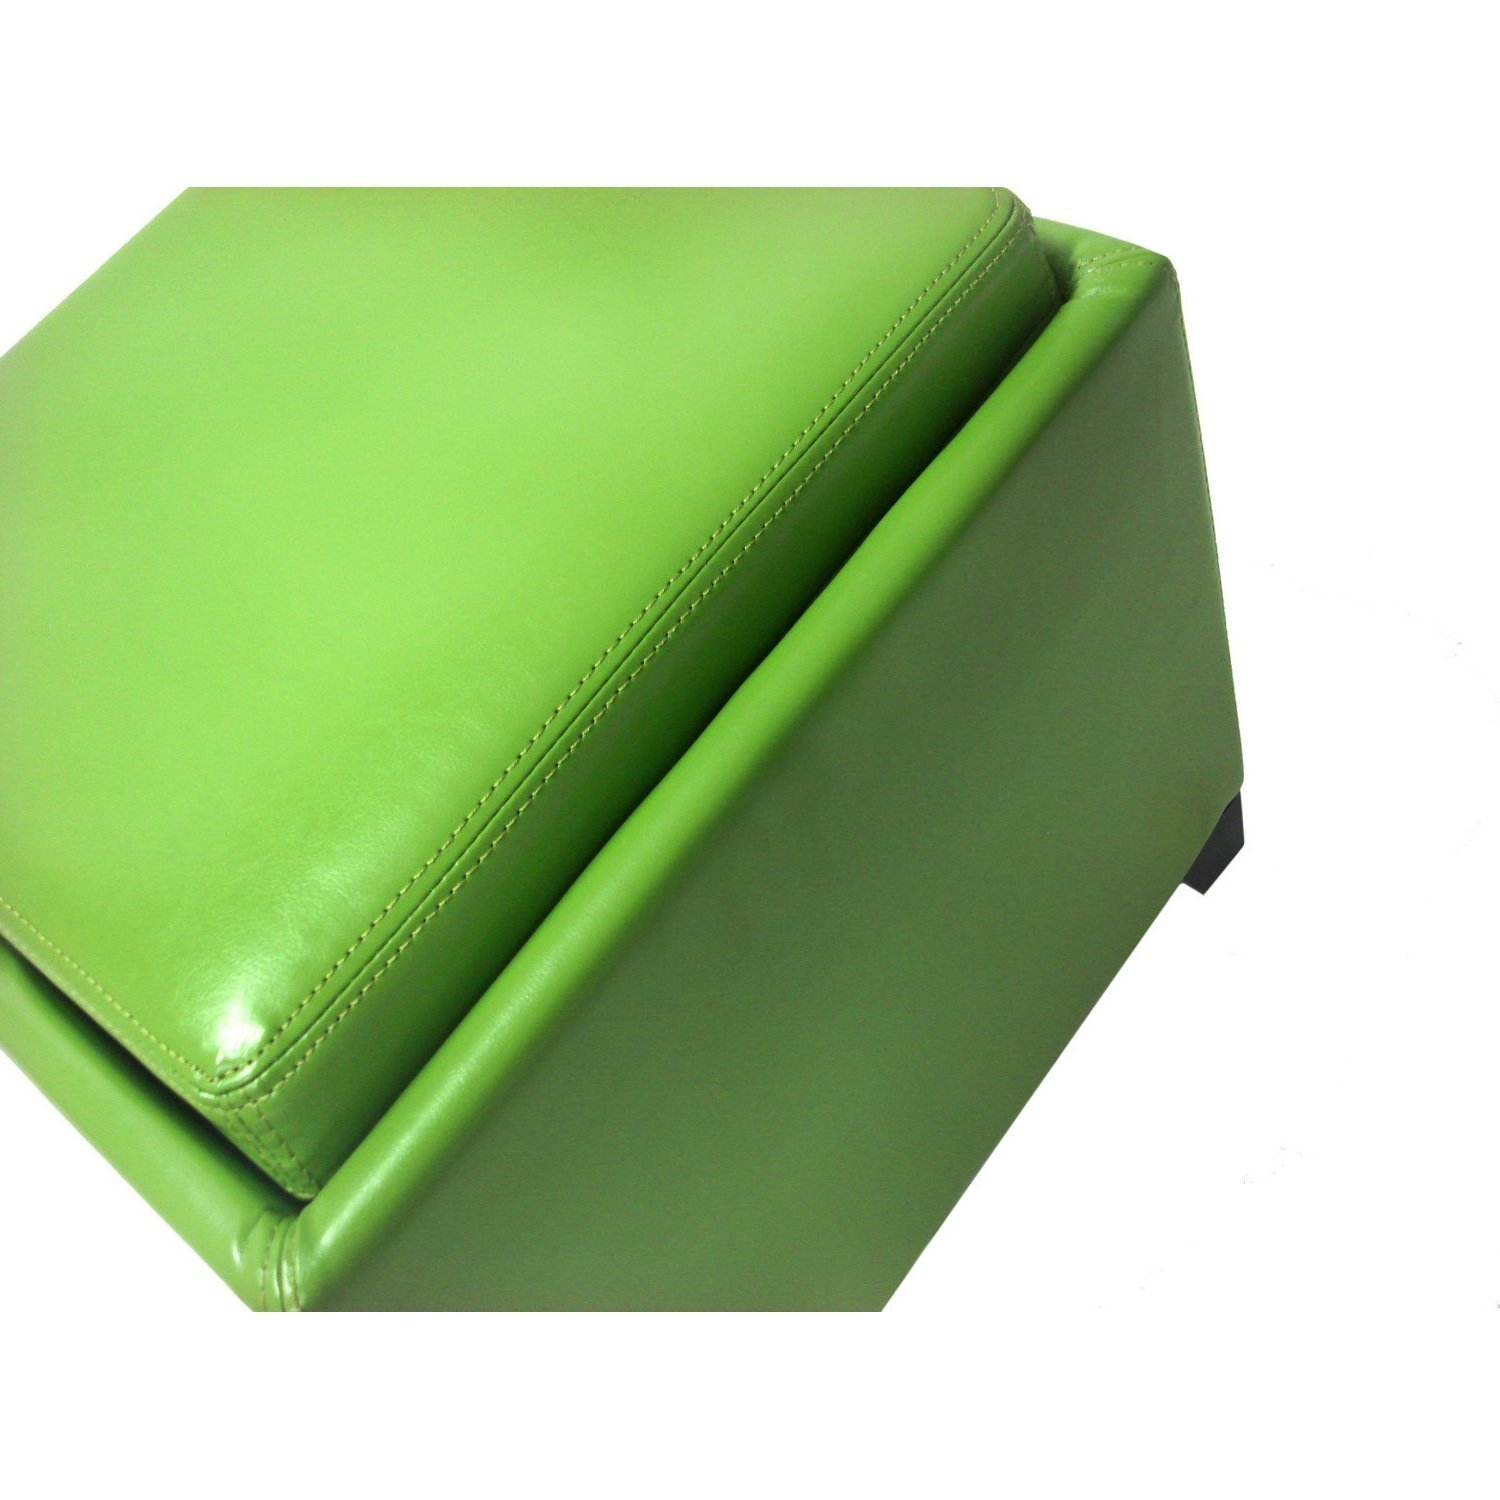 Single Piece Green Square Shape Small Storage Ottoman With Tray, Solid  Pattern, Cocktail,